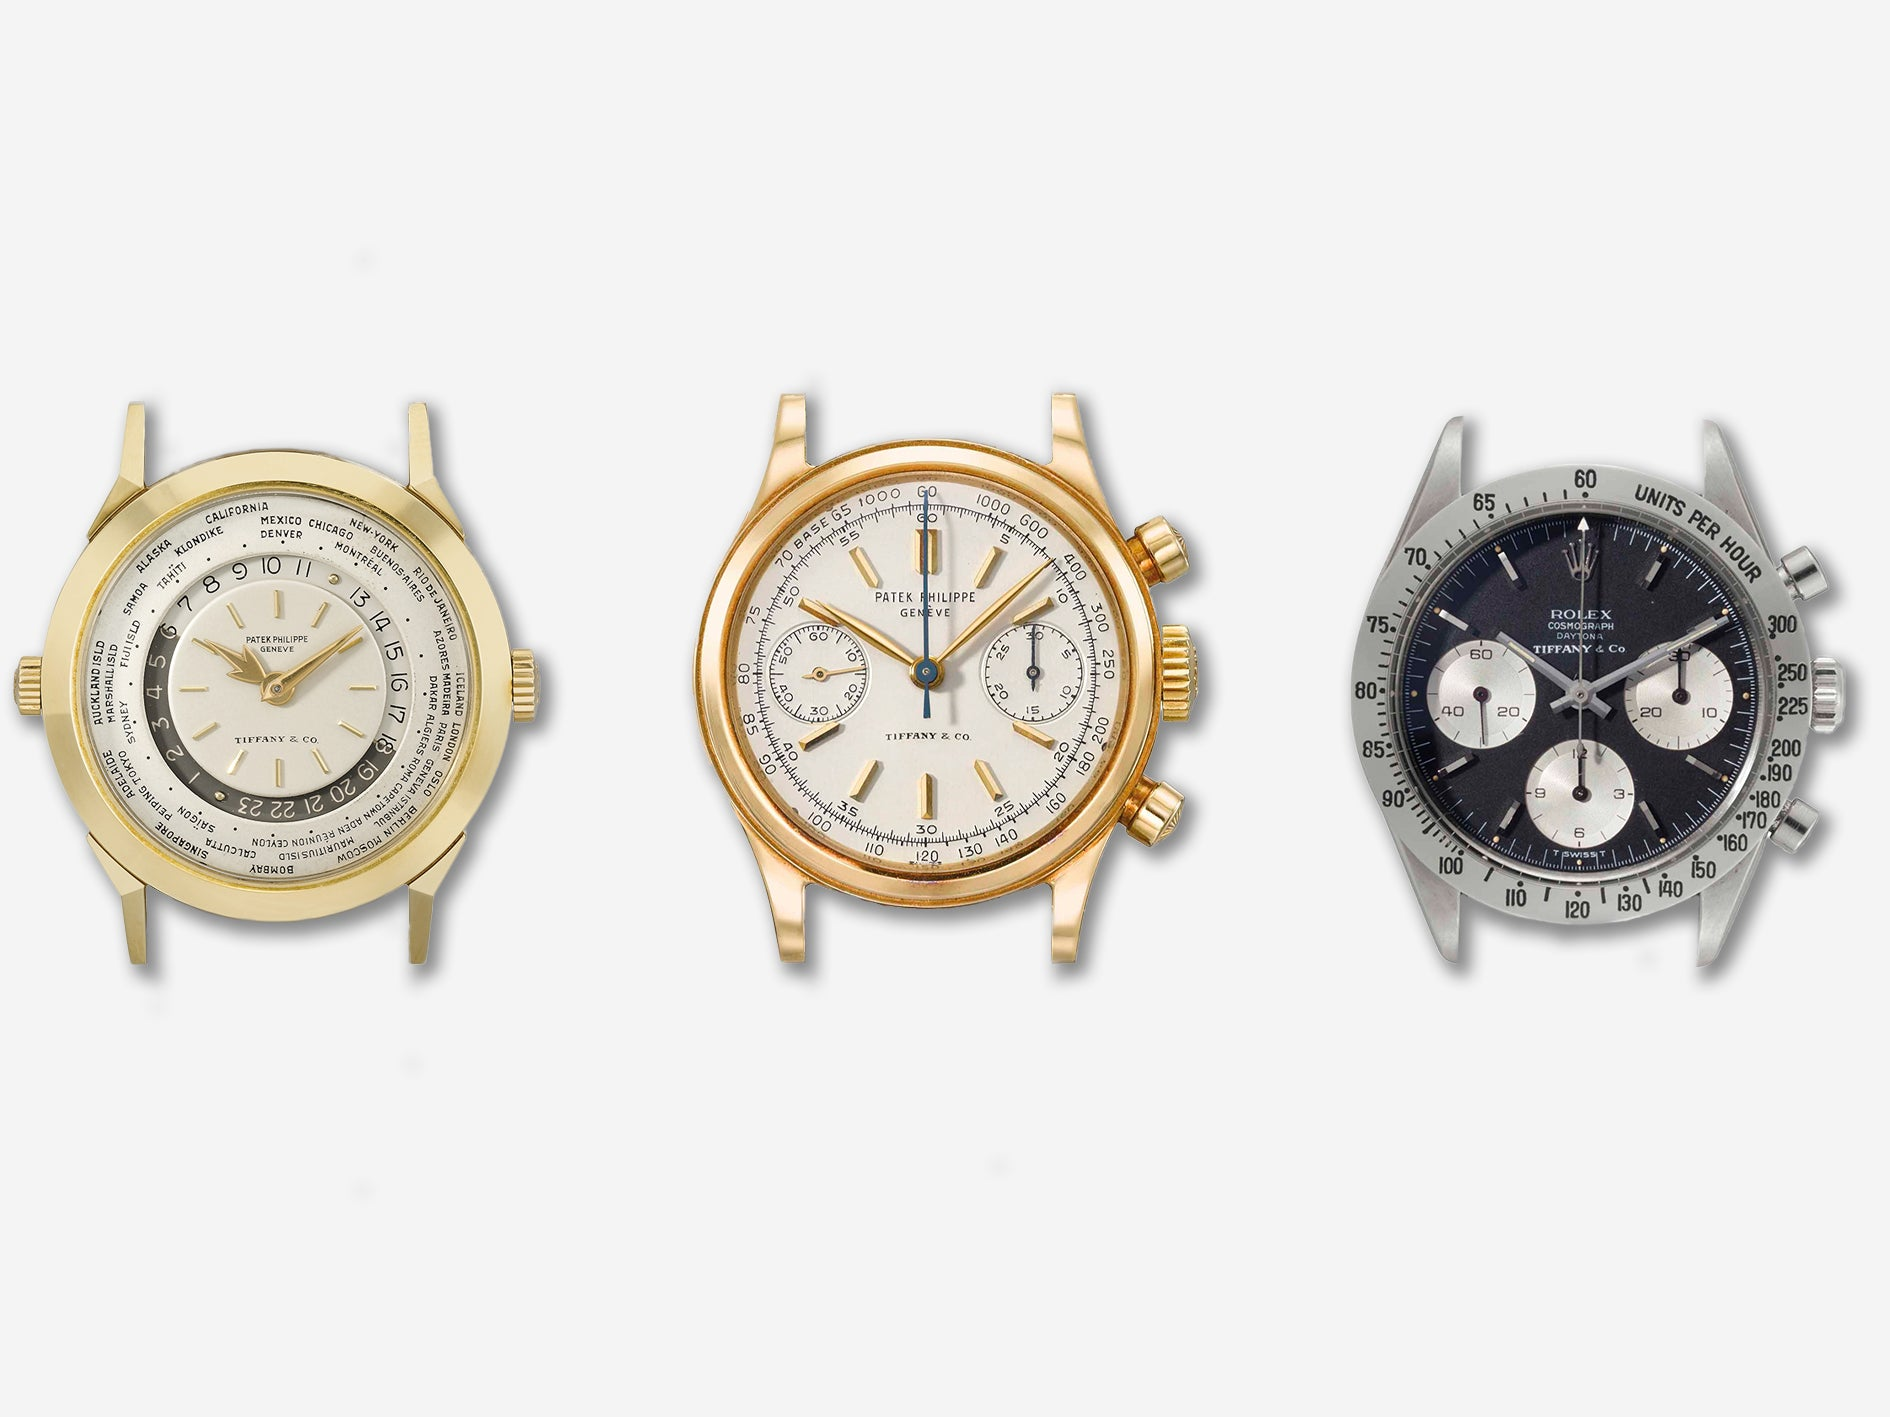 A Patek Philippe ref. 2523/1 (left), a Patek Philippe ref. 1463 (center) and a Rolex ref. 6239 (right) all signed by Tiffany & Co for A Collected Man